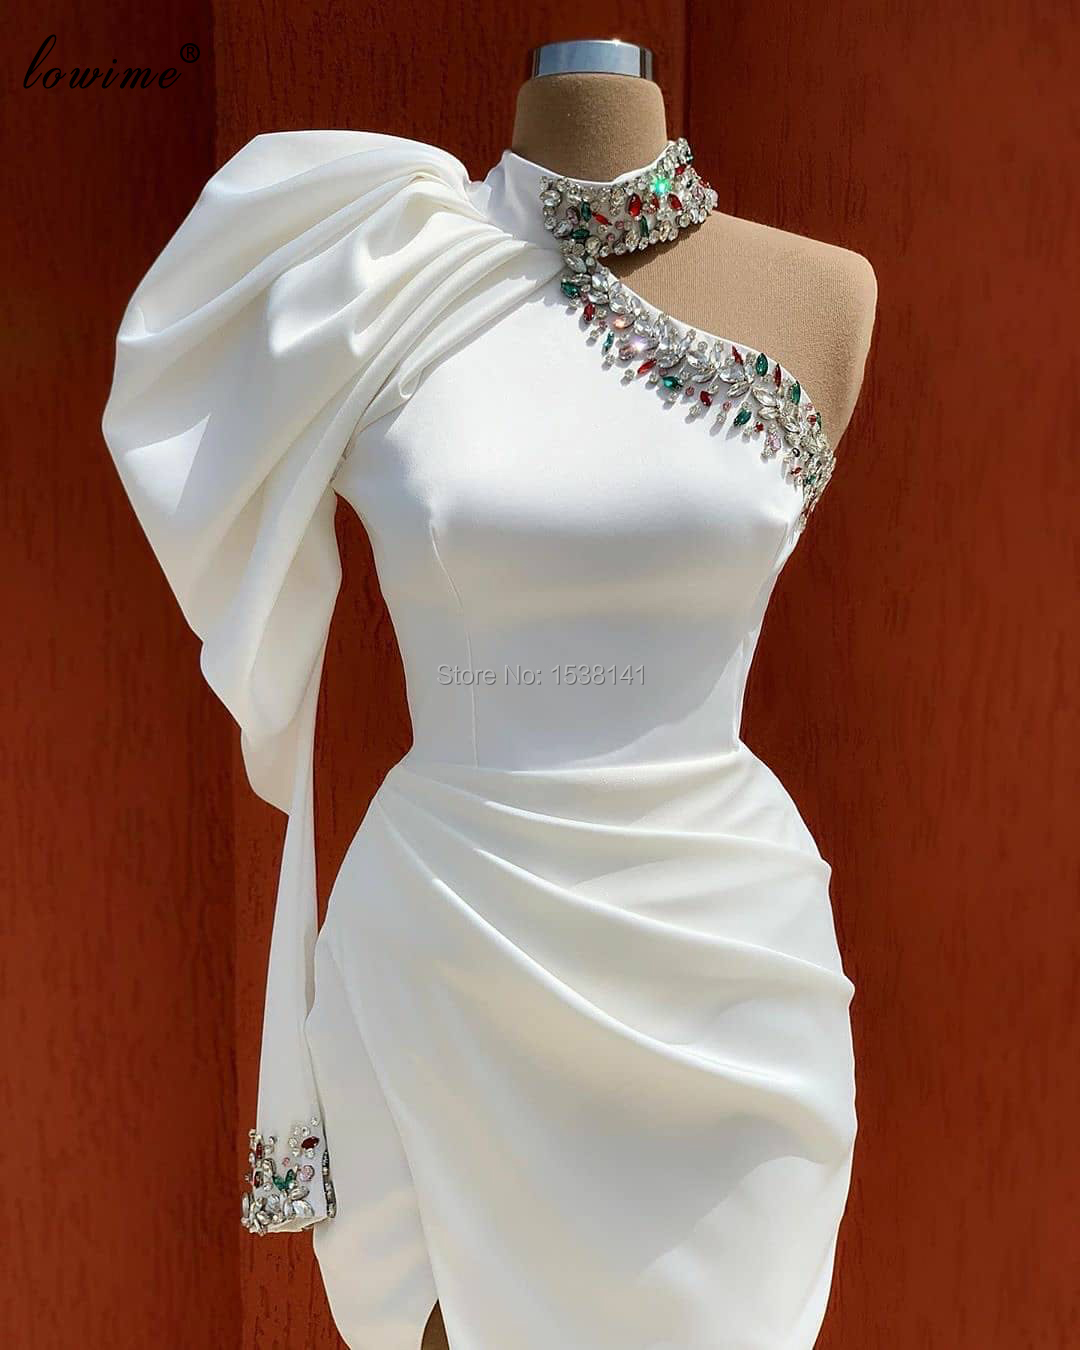 Muslim White Evening Dresses 2020 One Shoulder Elegant Formal Evening Gowns Crystals Prom Dresses Women Party Night Robes Custom